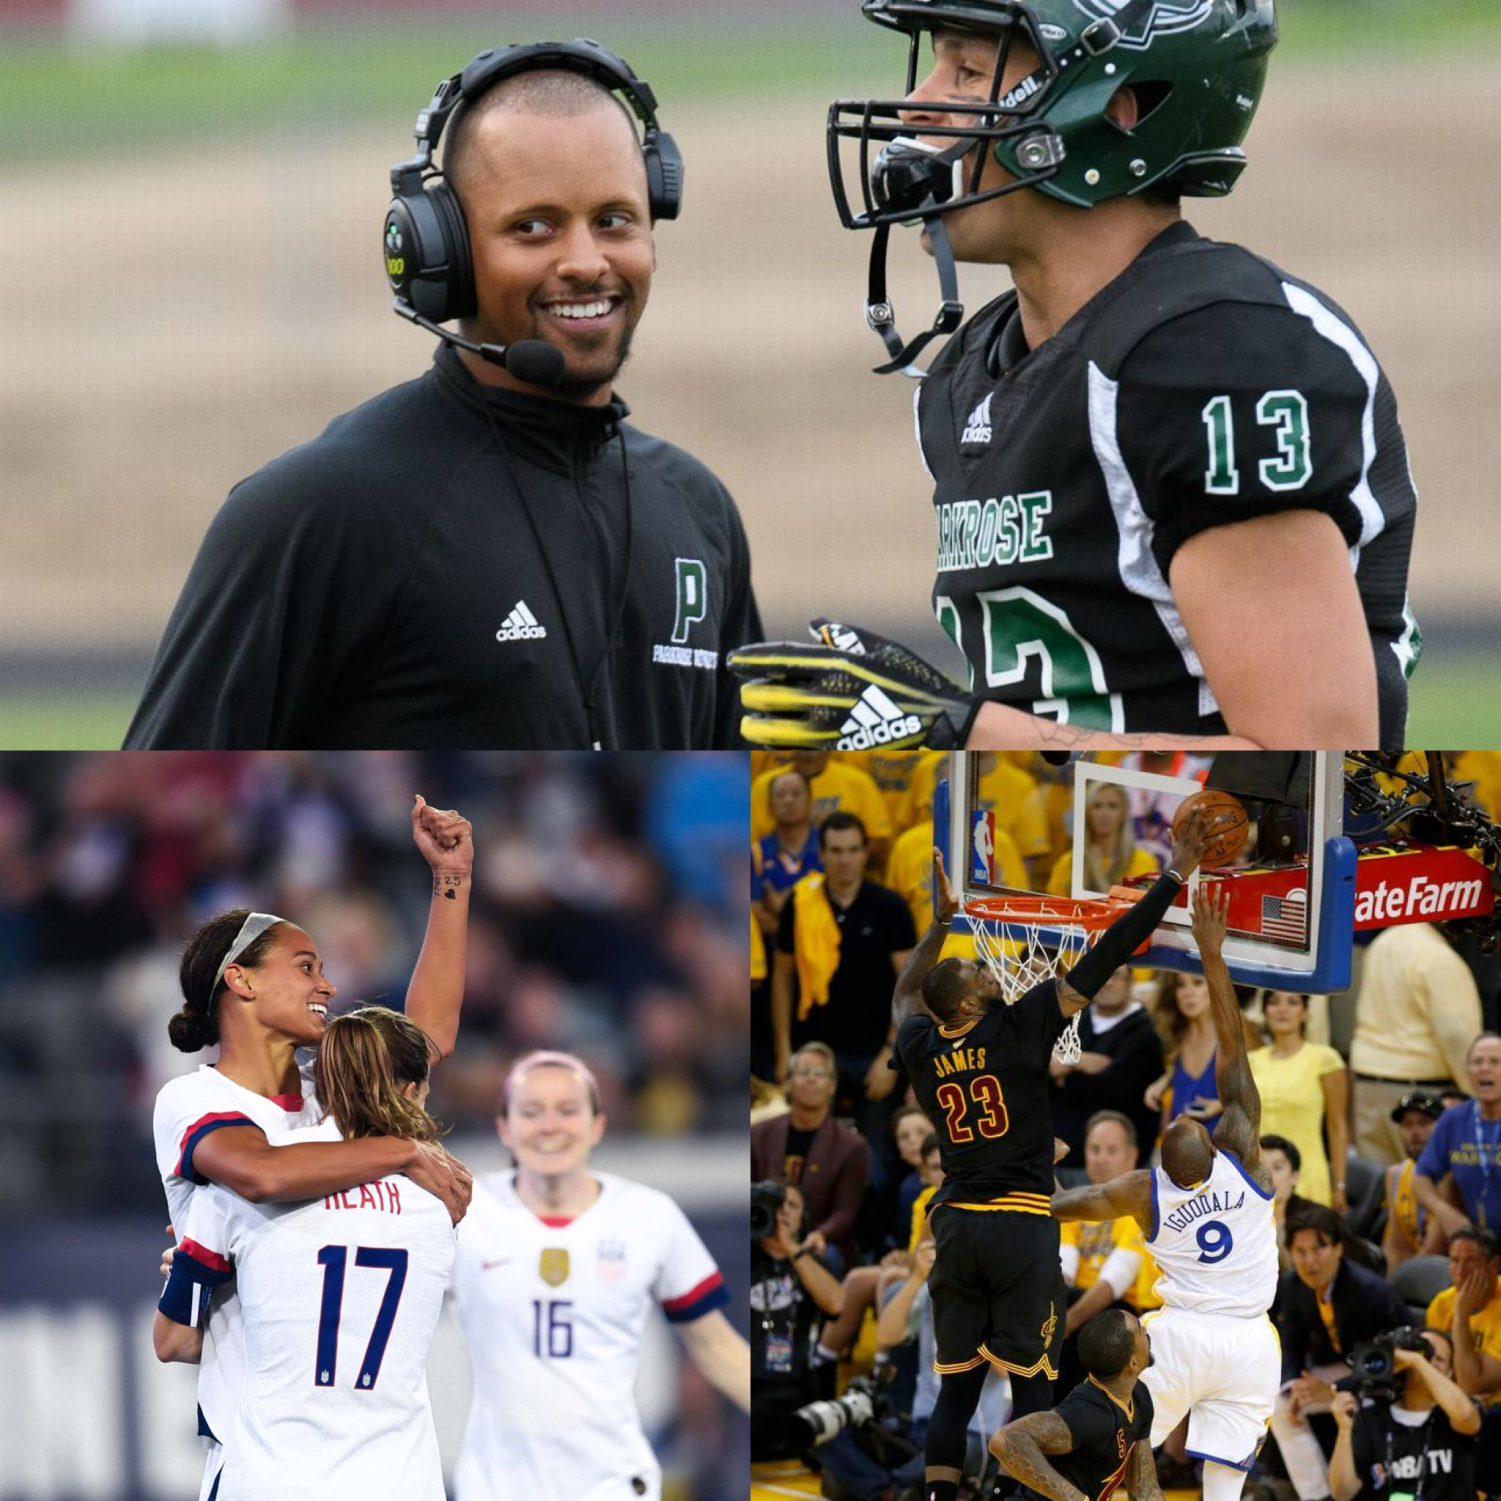 """Sports in the 2010s produced many memorable moments, ranging from exciting plays to heroic actions. Some of our picks for the best of the decade include Keanon Lowe (top), the US Women's national team (bottom left) and """"the Block"""" (bottom right)."""